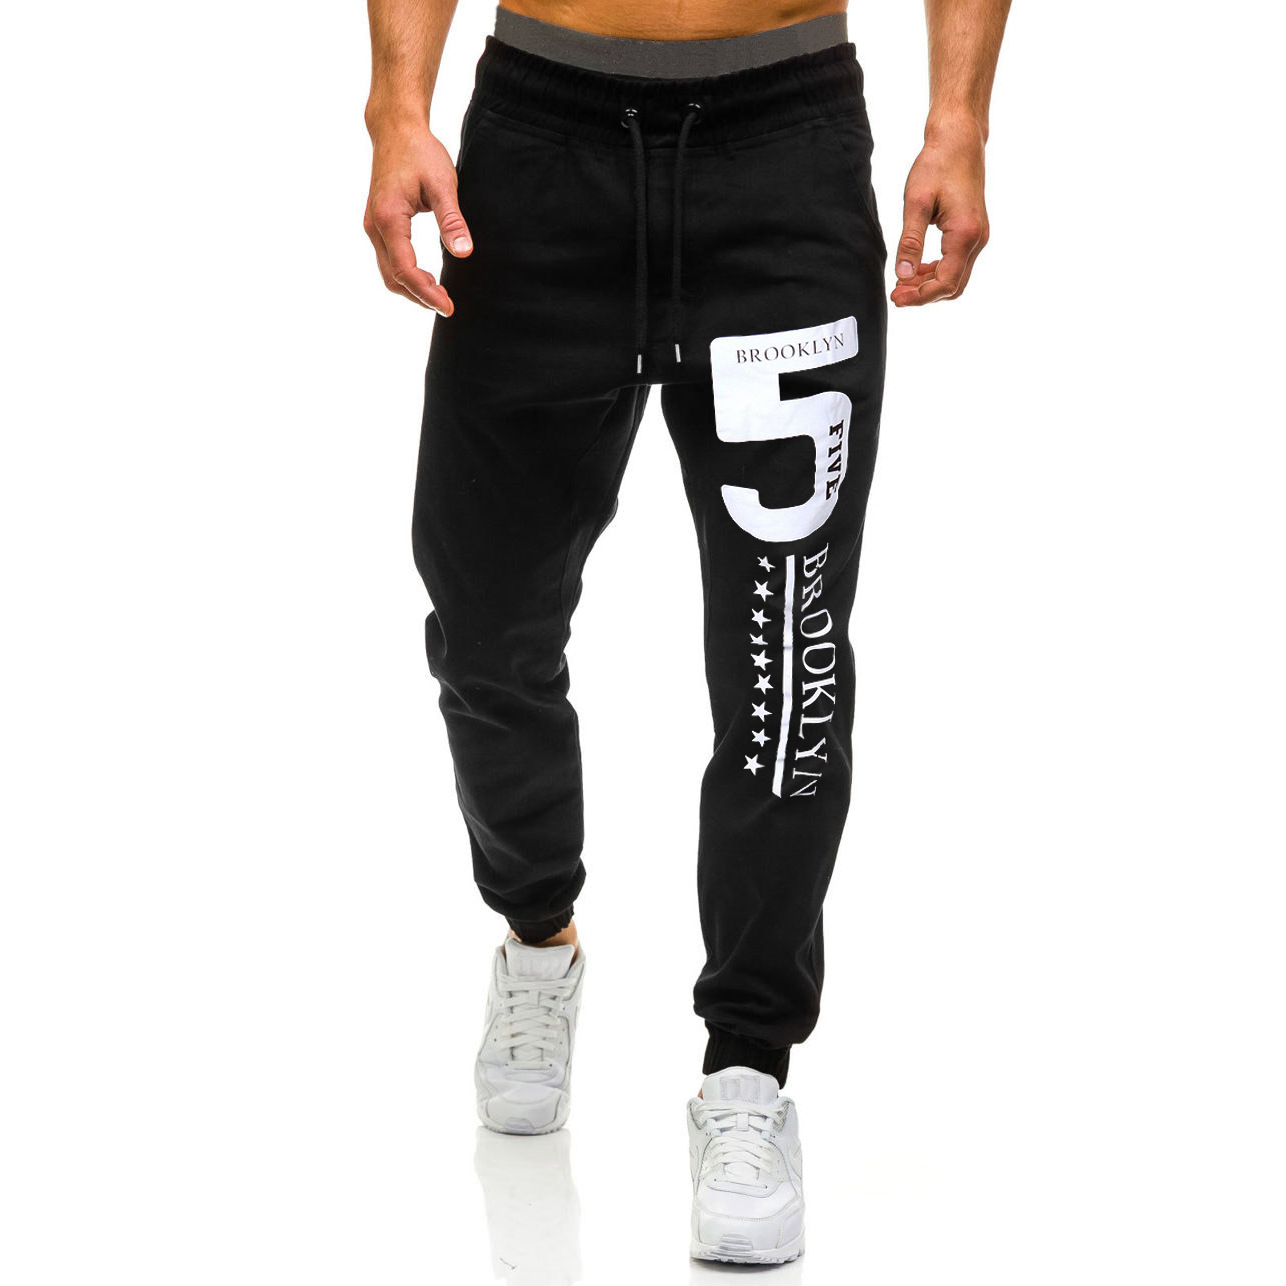 Hot Selling 2019 New Style Plus-sized Menswear Fashion Casual Pants Trend Beam Leg Casual Pants 3455